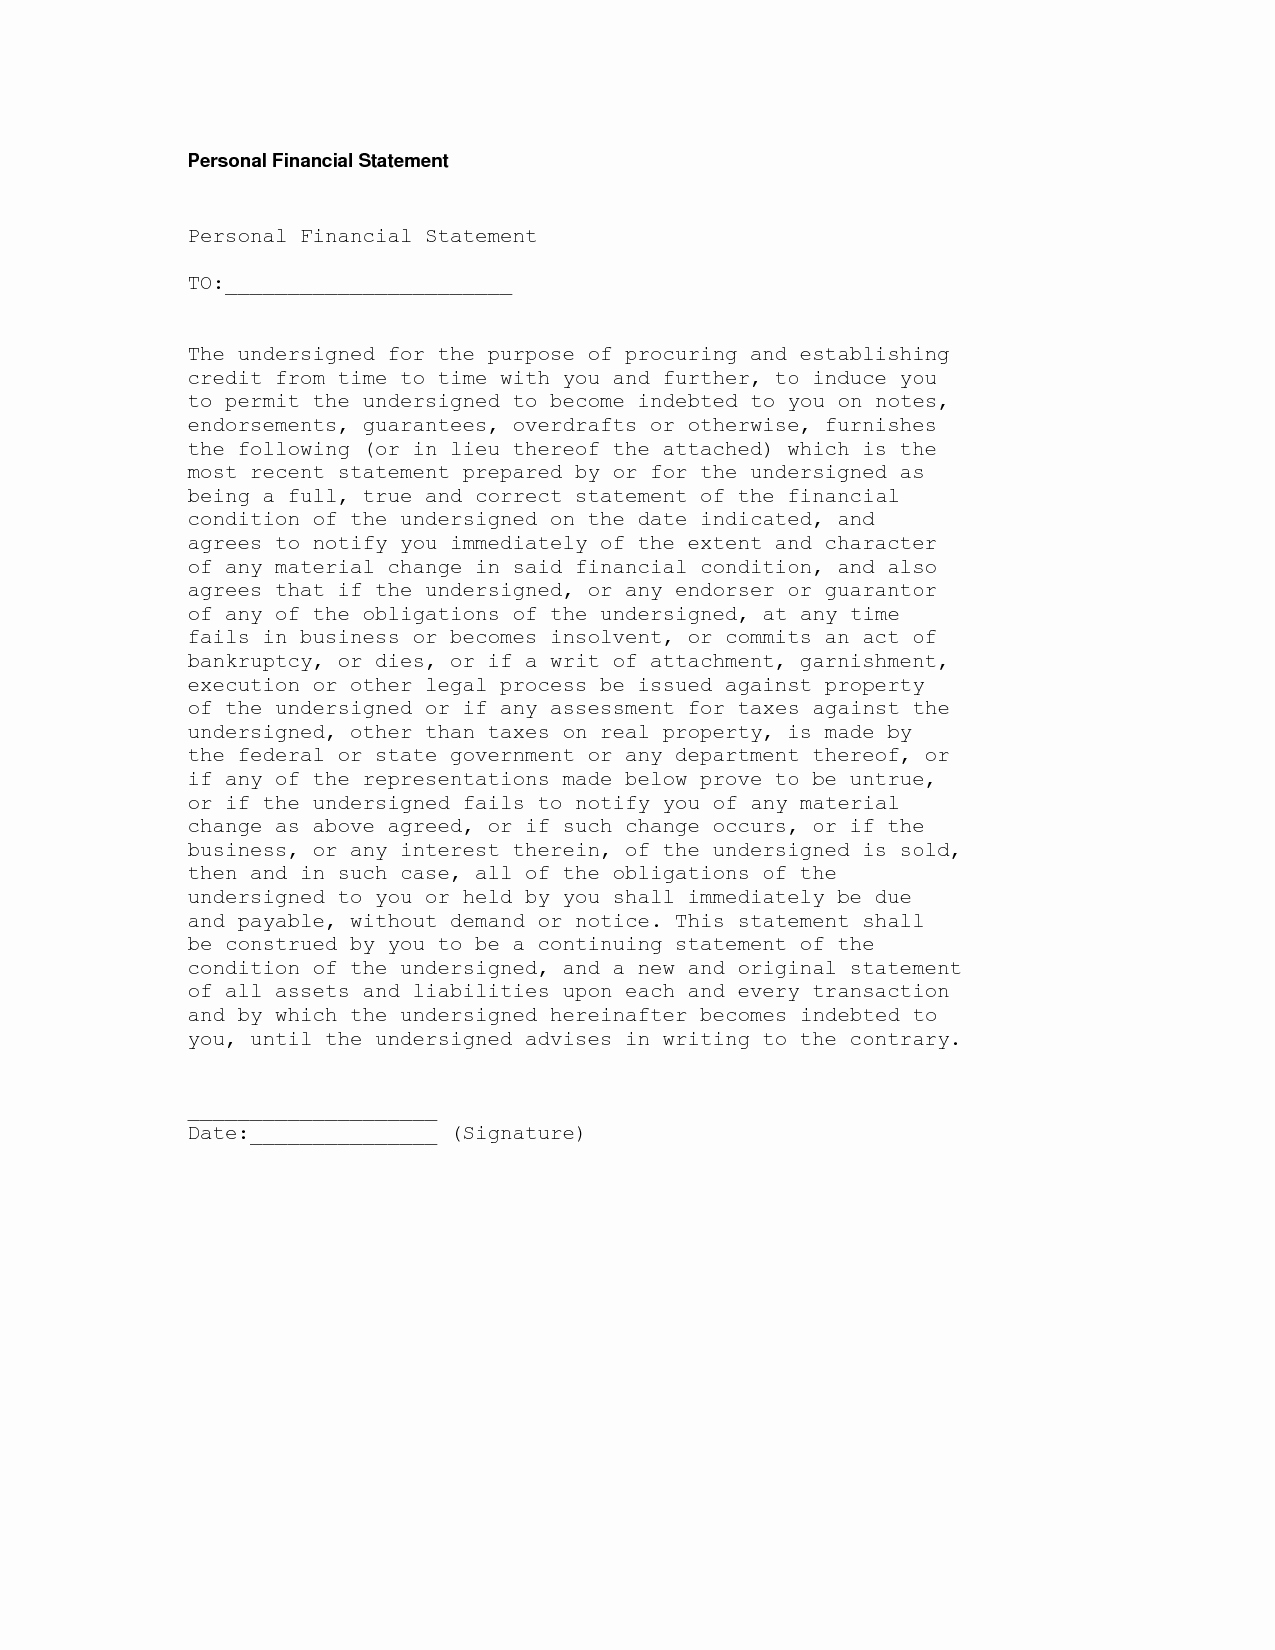 Financial Statement Letter Fresh Personal Financial Statement Purpose Well Liked